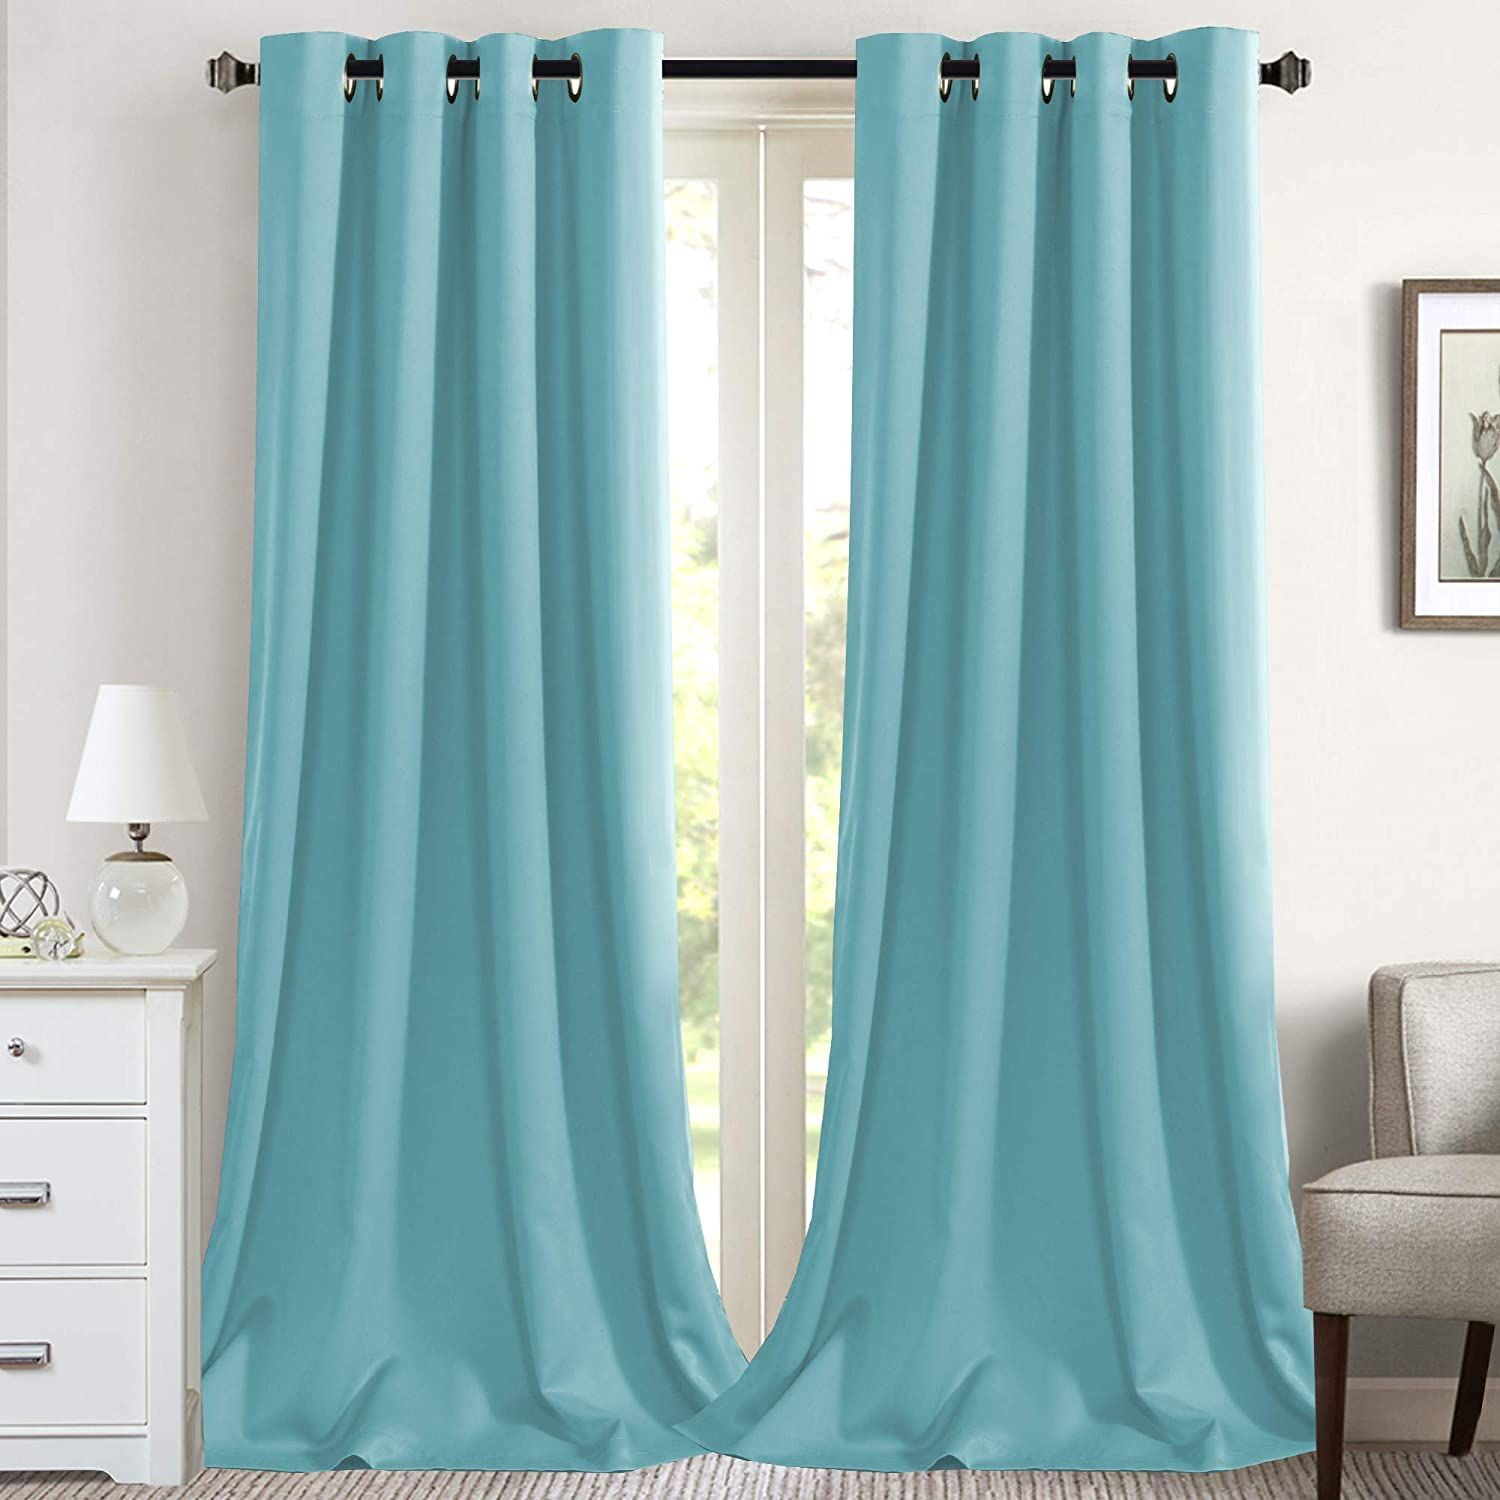 Aqua Blackout Thermal Curtains In 2020 Panel Curtains Curtains Light Blocking Curtains